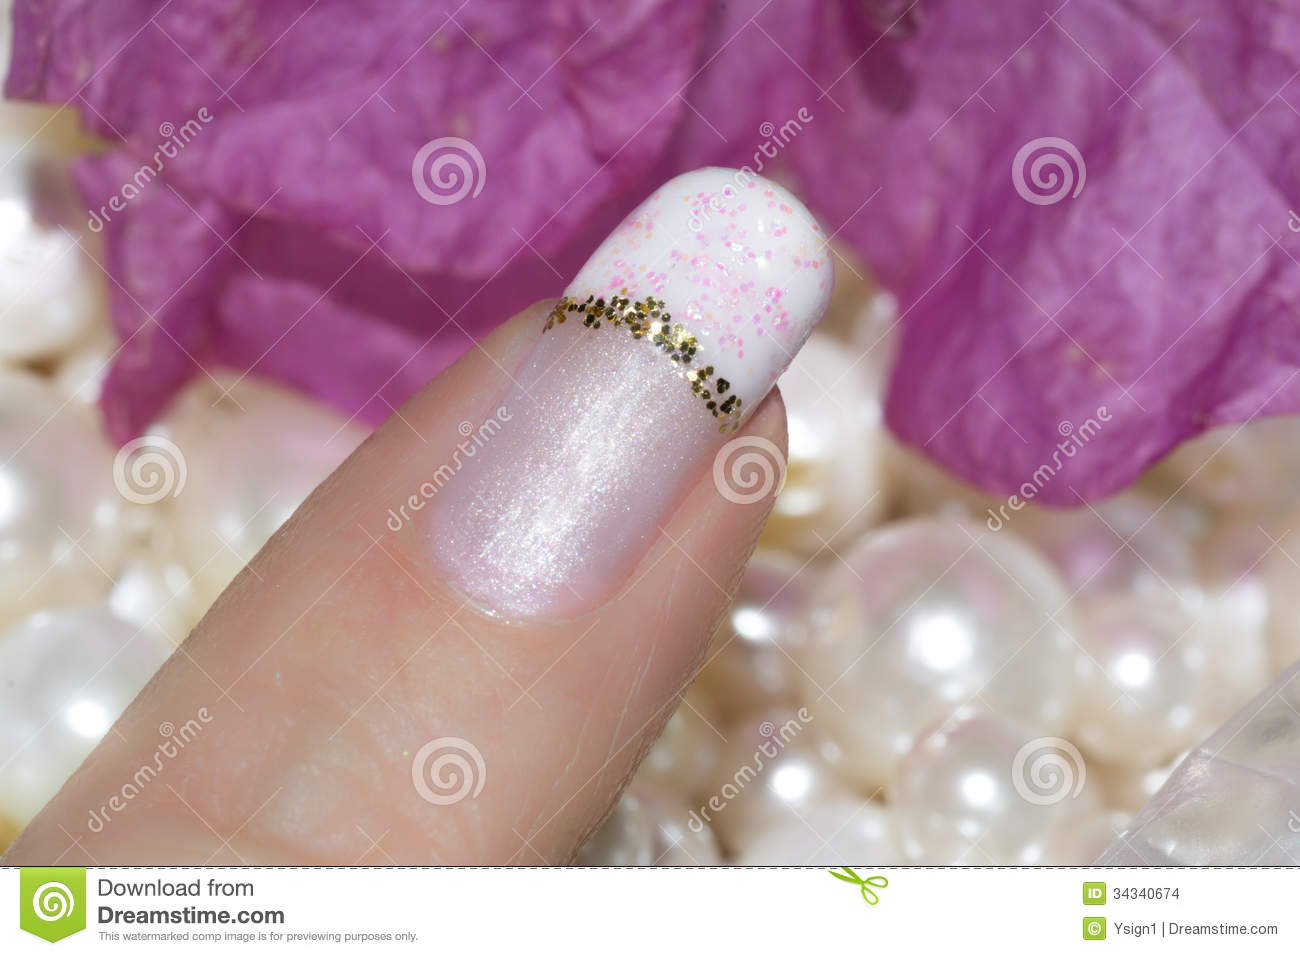 Nails With A French Manicure With A Gold Stripe Stock Photo - Image ...